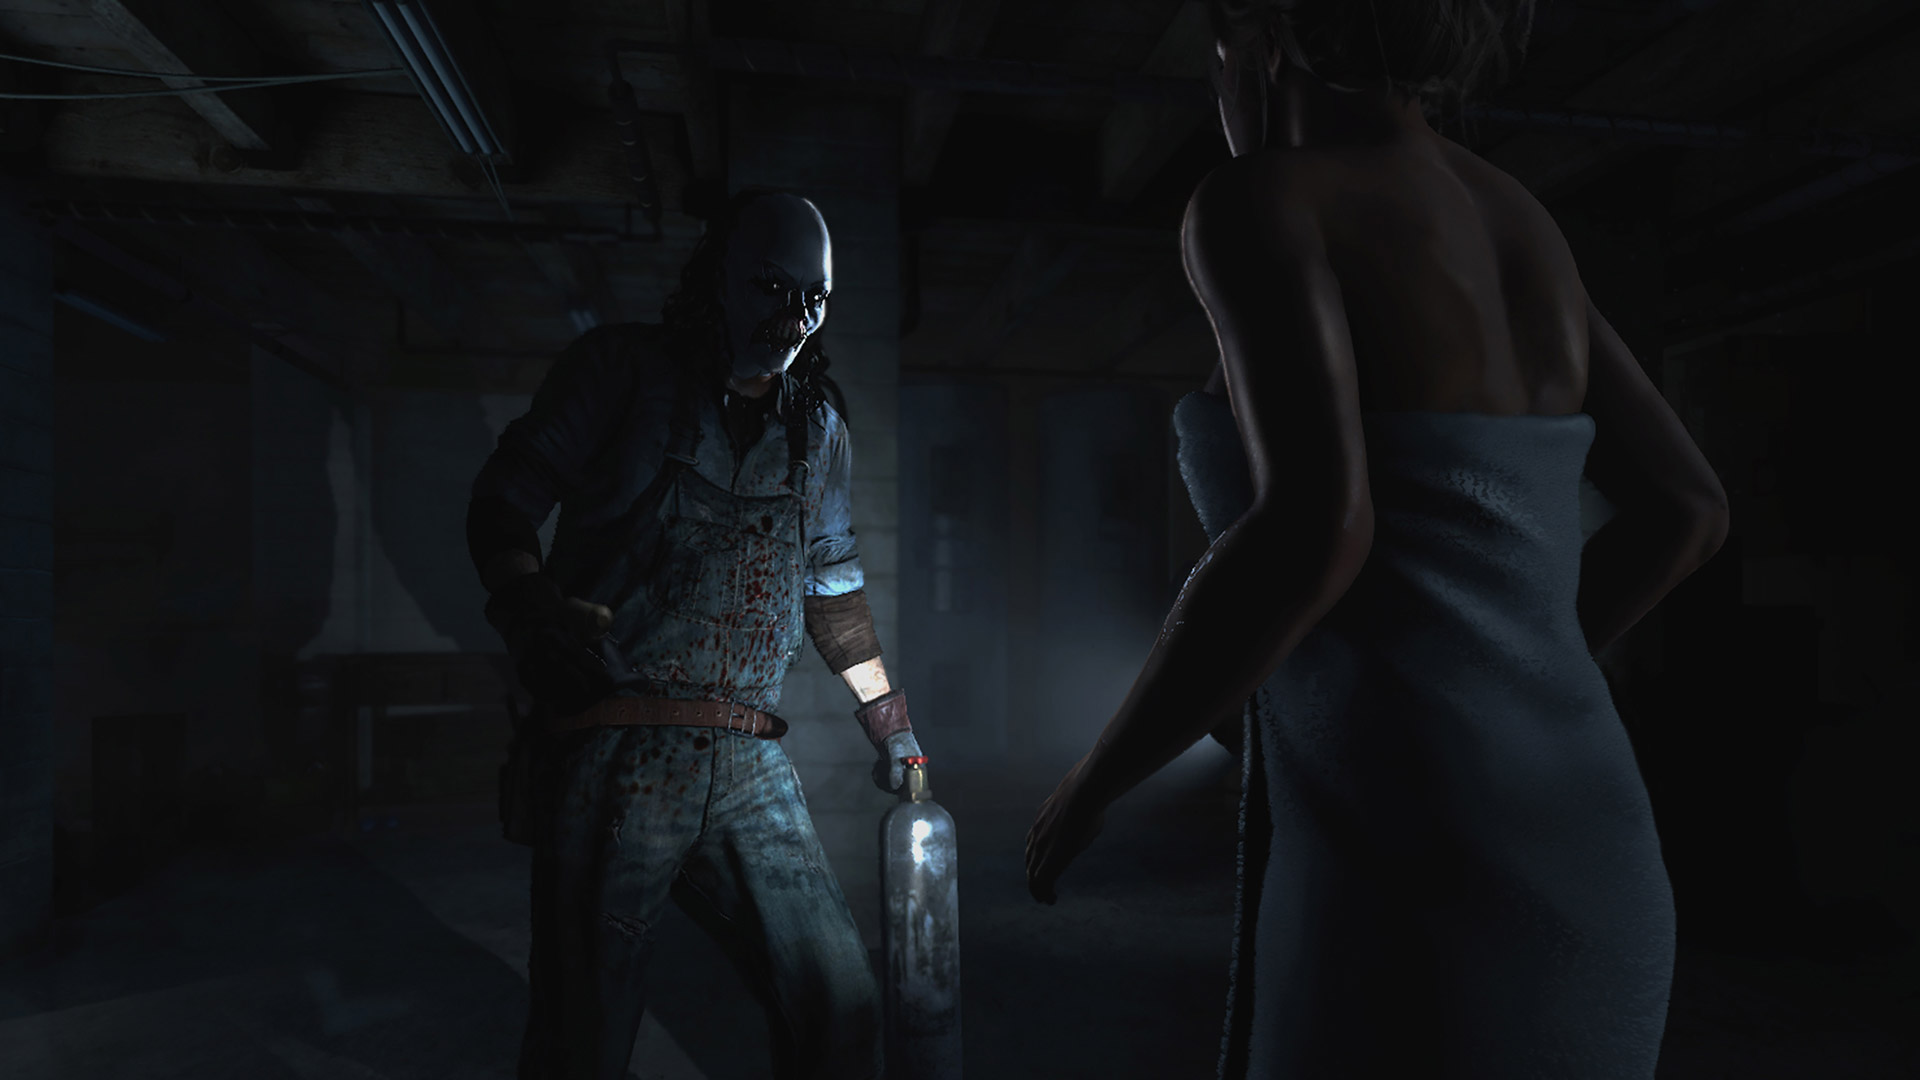 PS4 horror game Until Dawn is a pleasant surprise, even with its familiar horror tropes